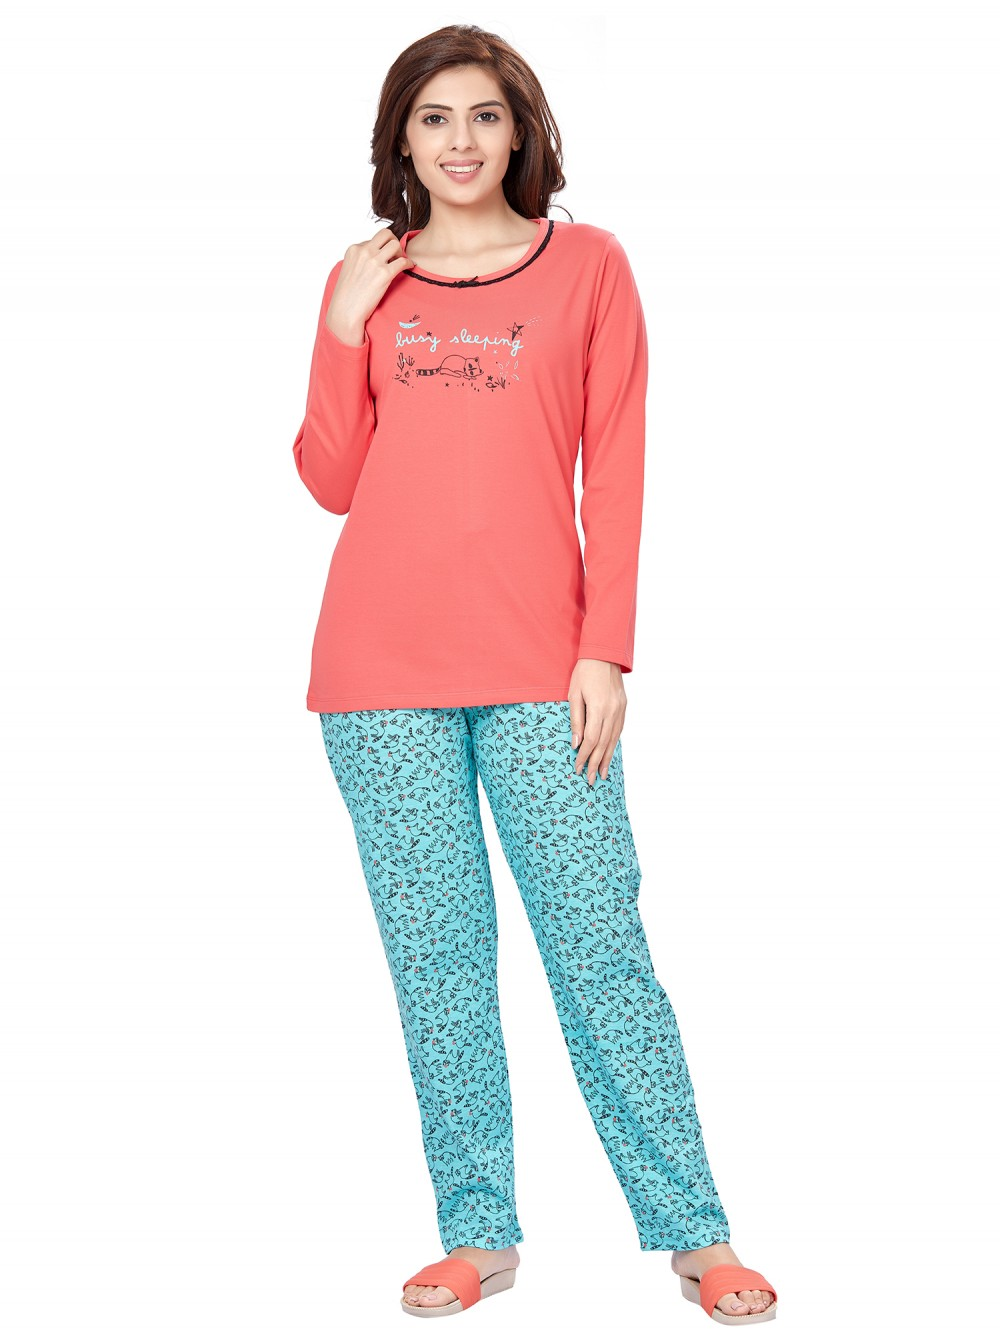 July Nightwear for women Essentials T- Shirt   Pyjama -PC713L